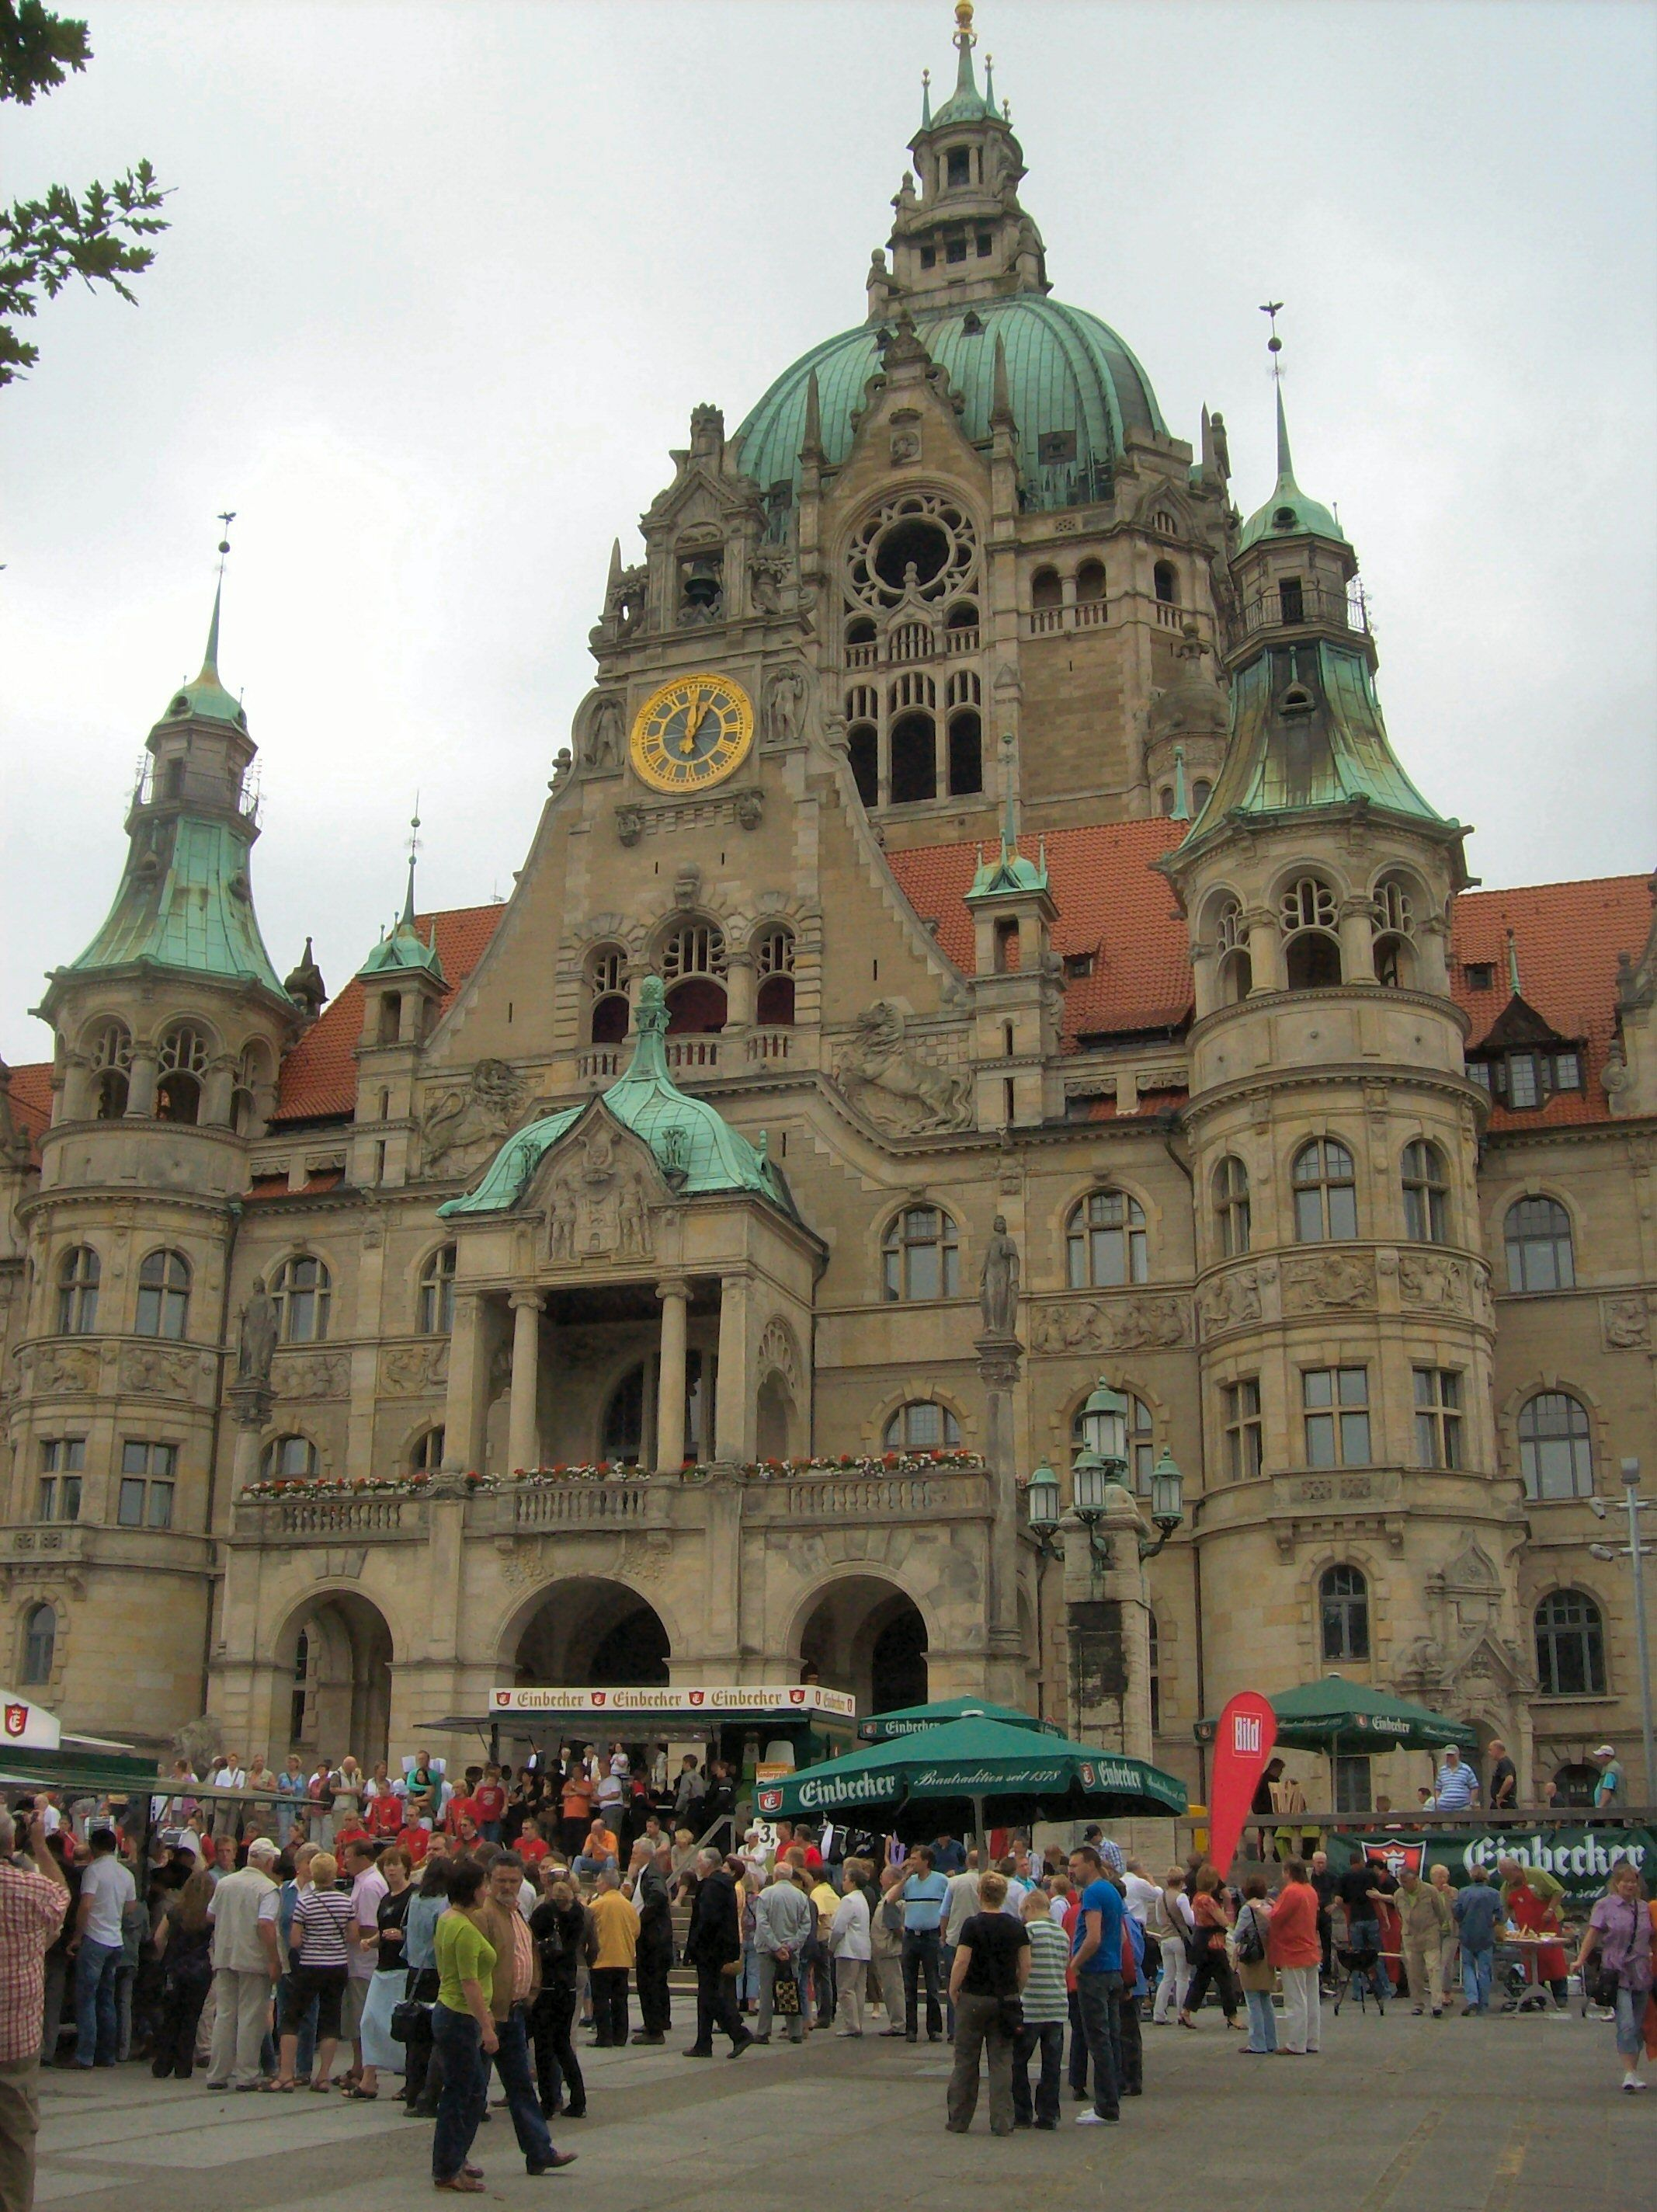 Neues Rathaus in Hannover, Germany Hannover, Bremerhaven